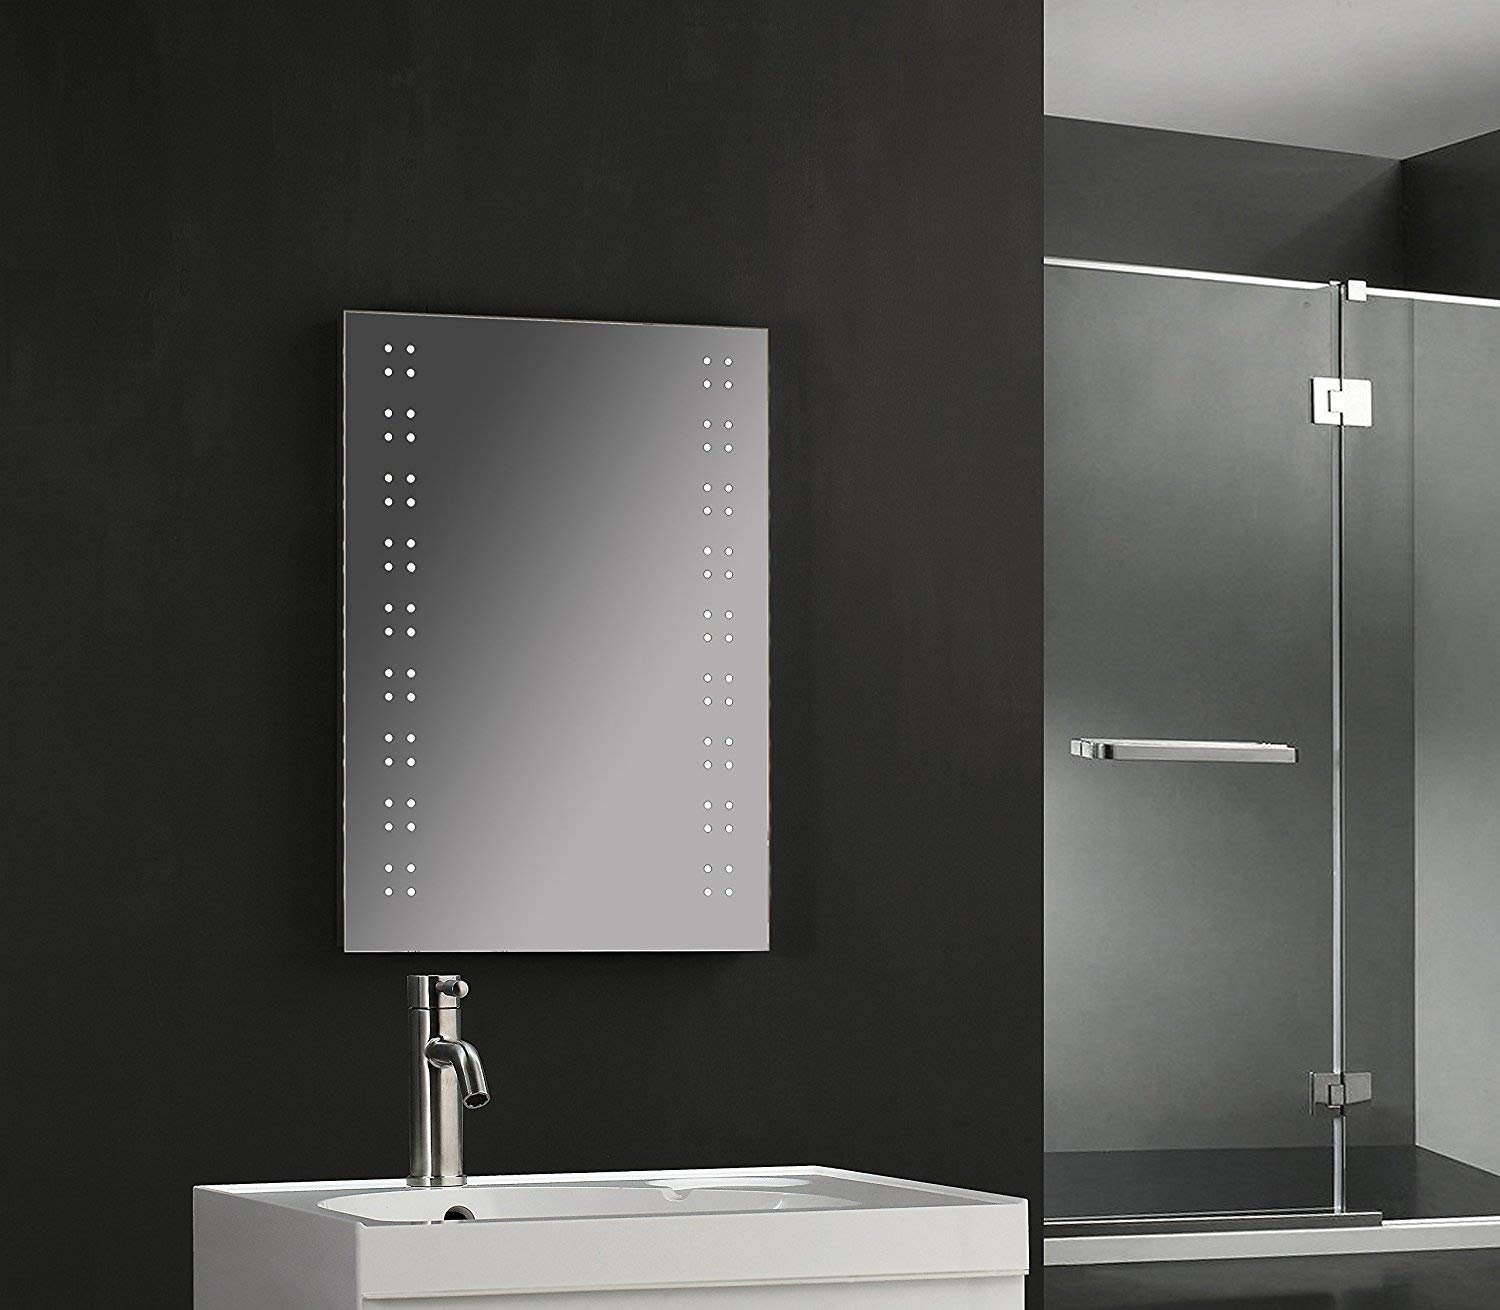 Tailored Plumb 700 x 500mm 80 LED Illuminated Touch Bathroom Mirror Demister Shaver Socket IP44